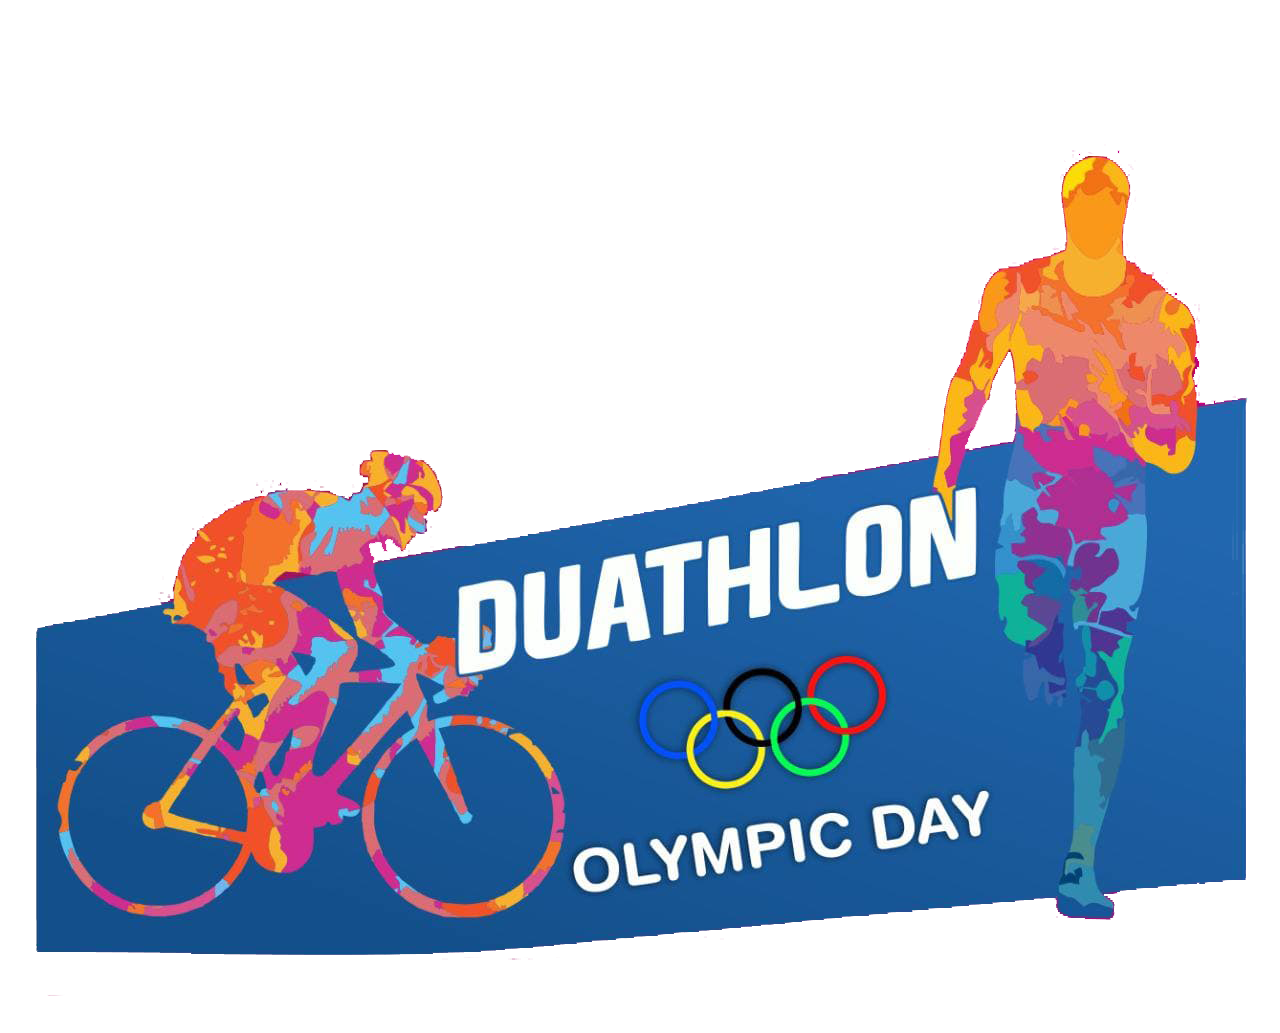 Dualthon Olympic Day